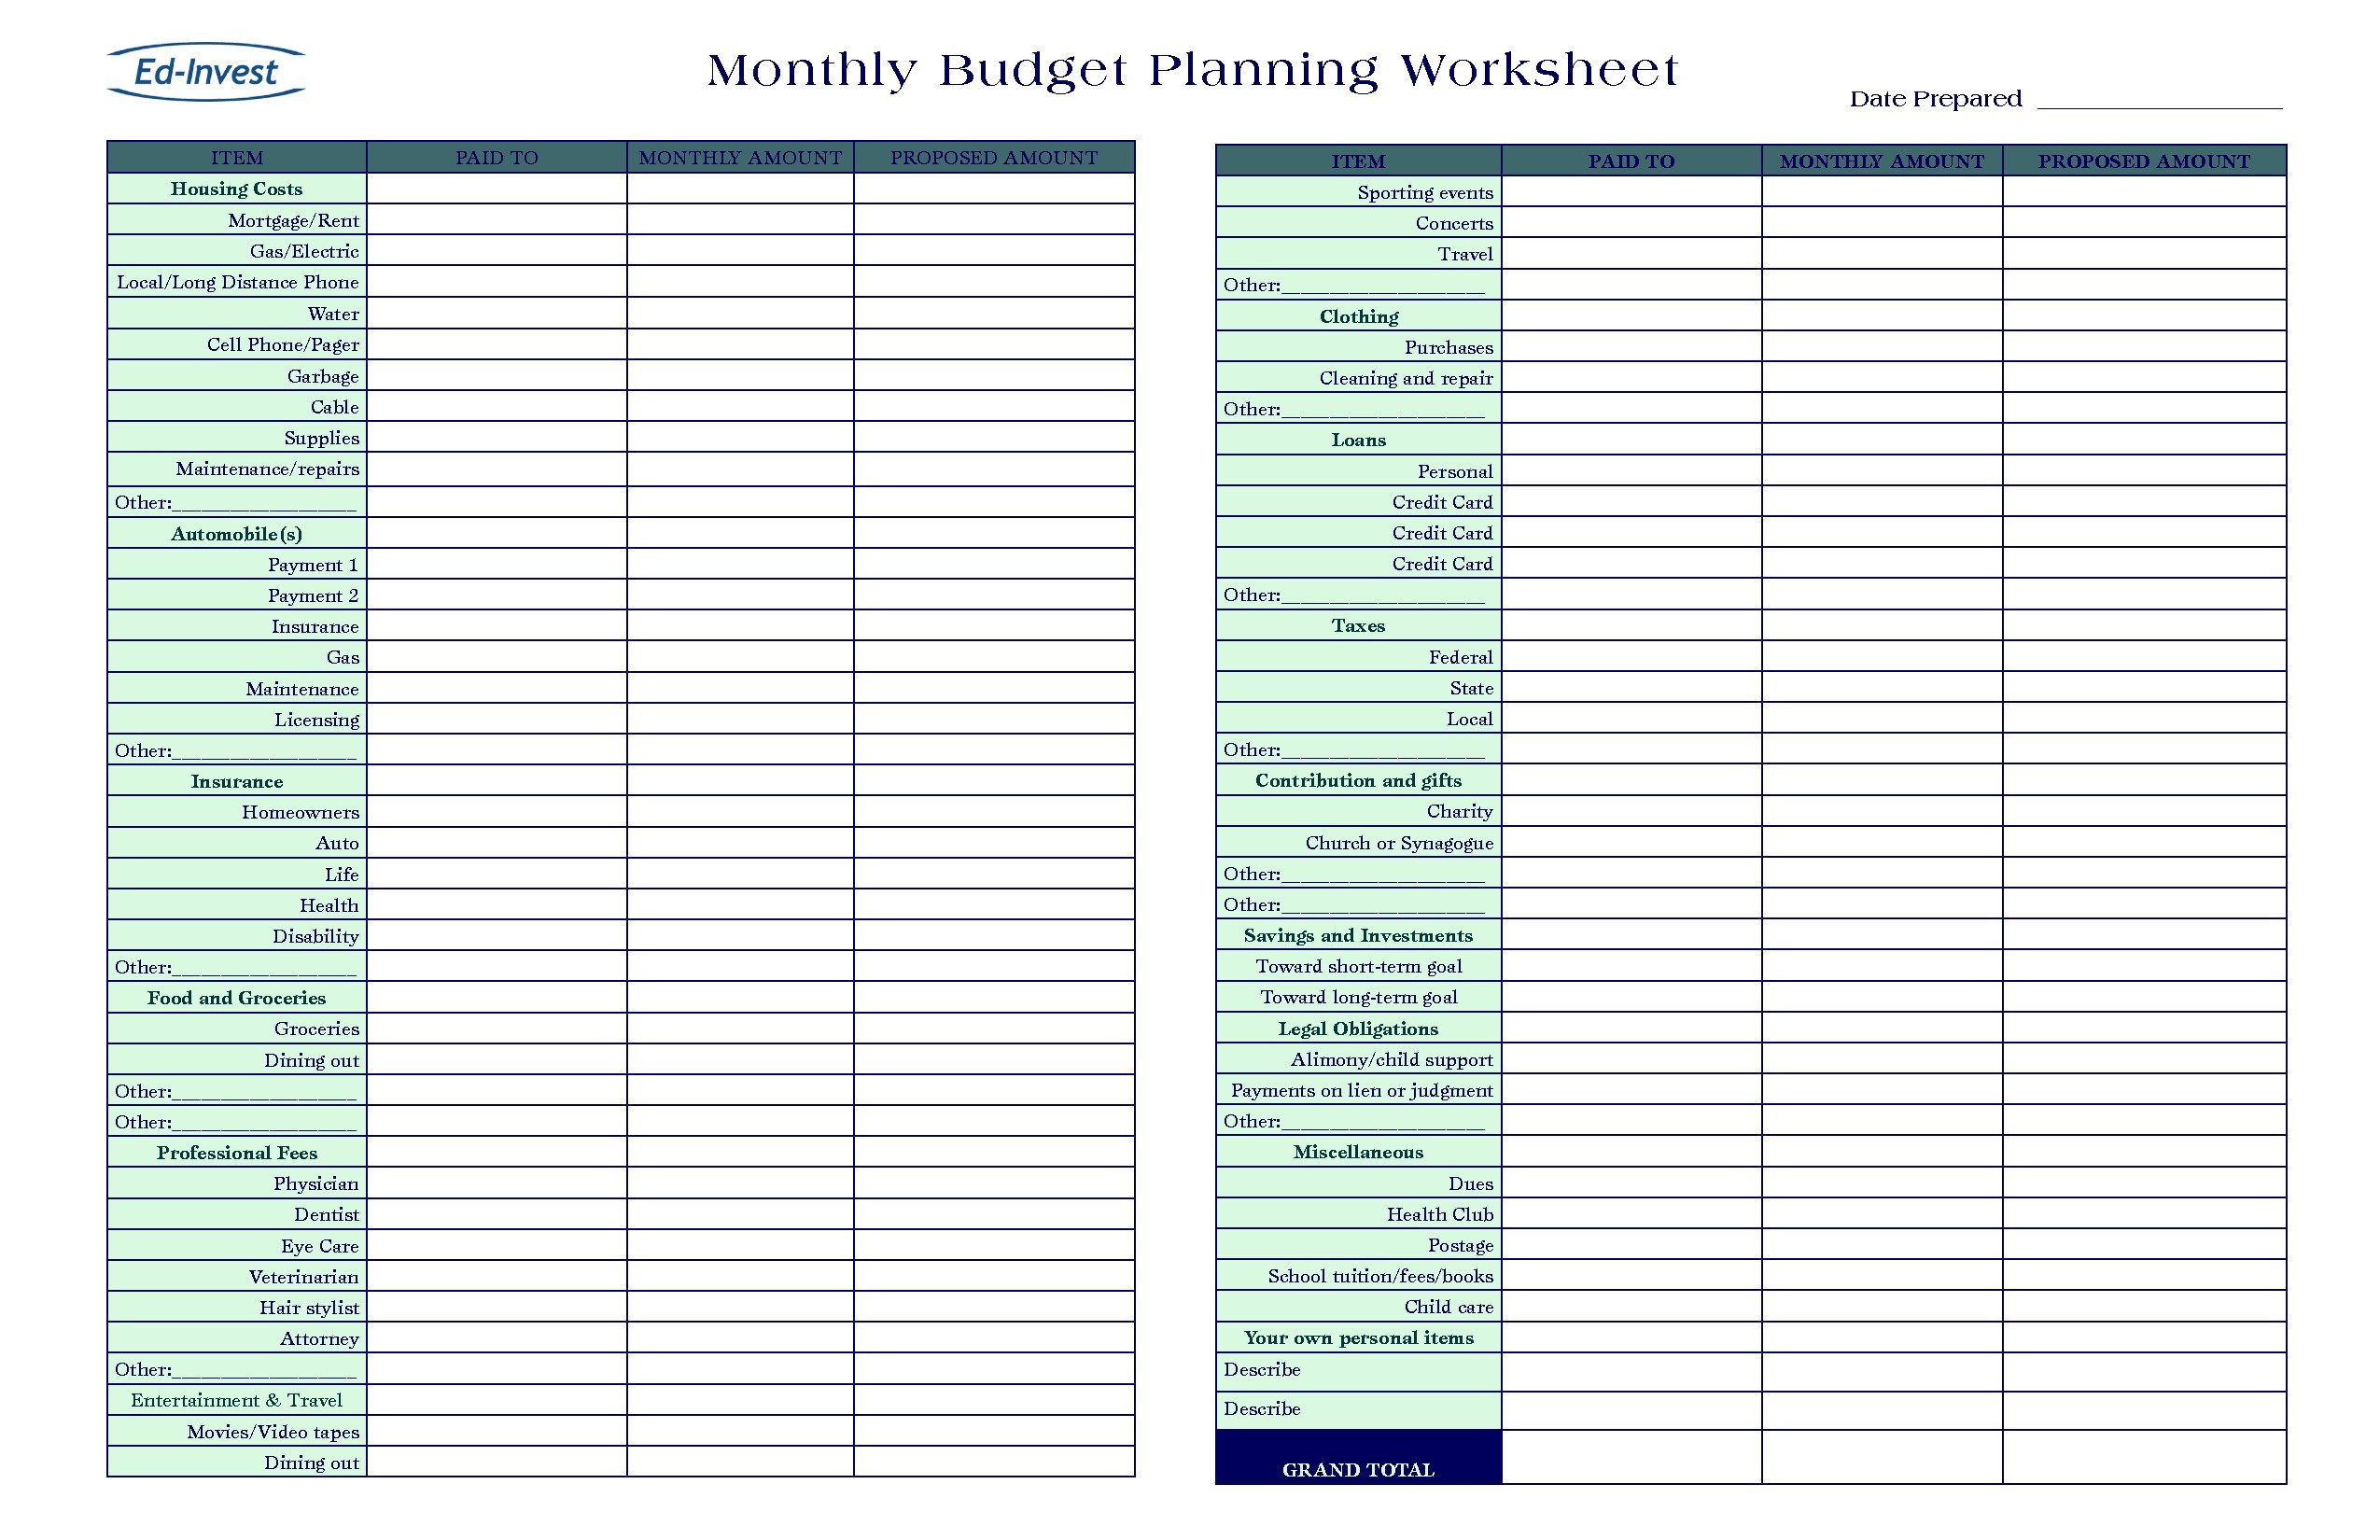 Business Expense Spreadsheet Template Free Simple Free Business For Small Business Expenses Spreadsheet Template